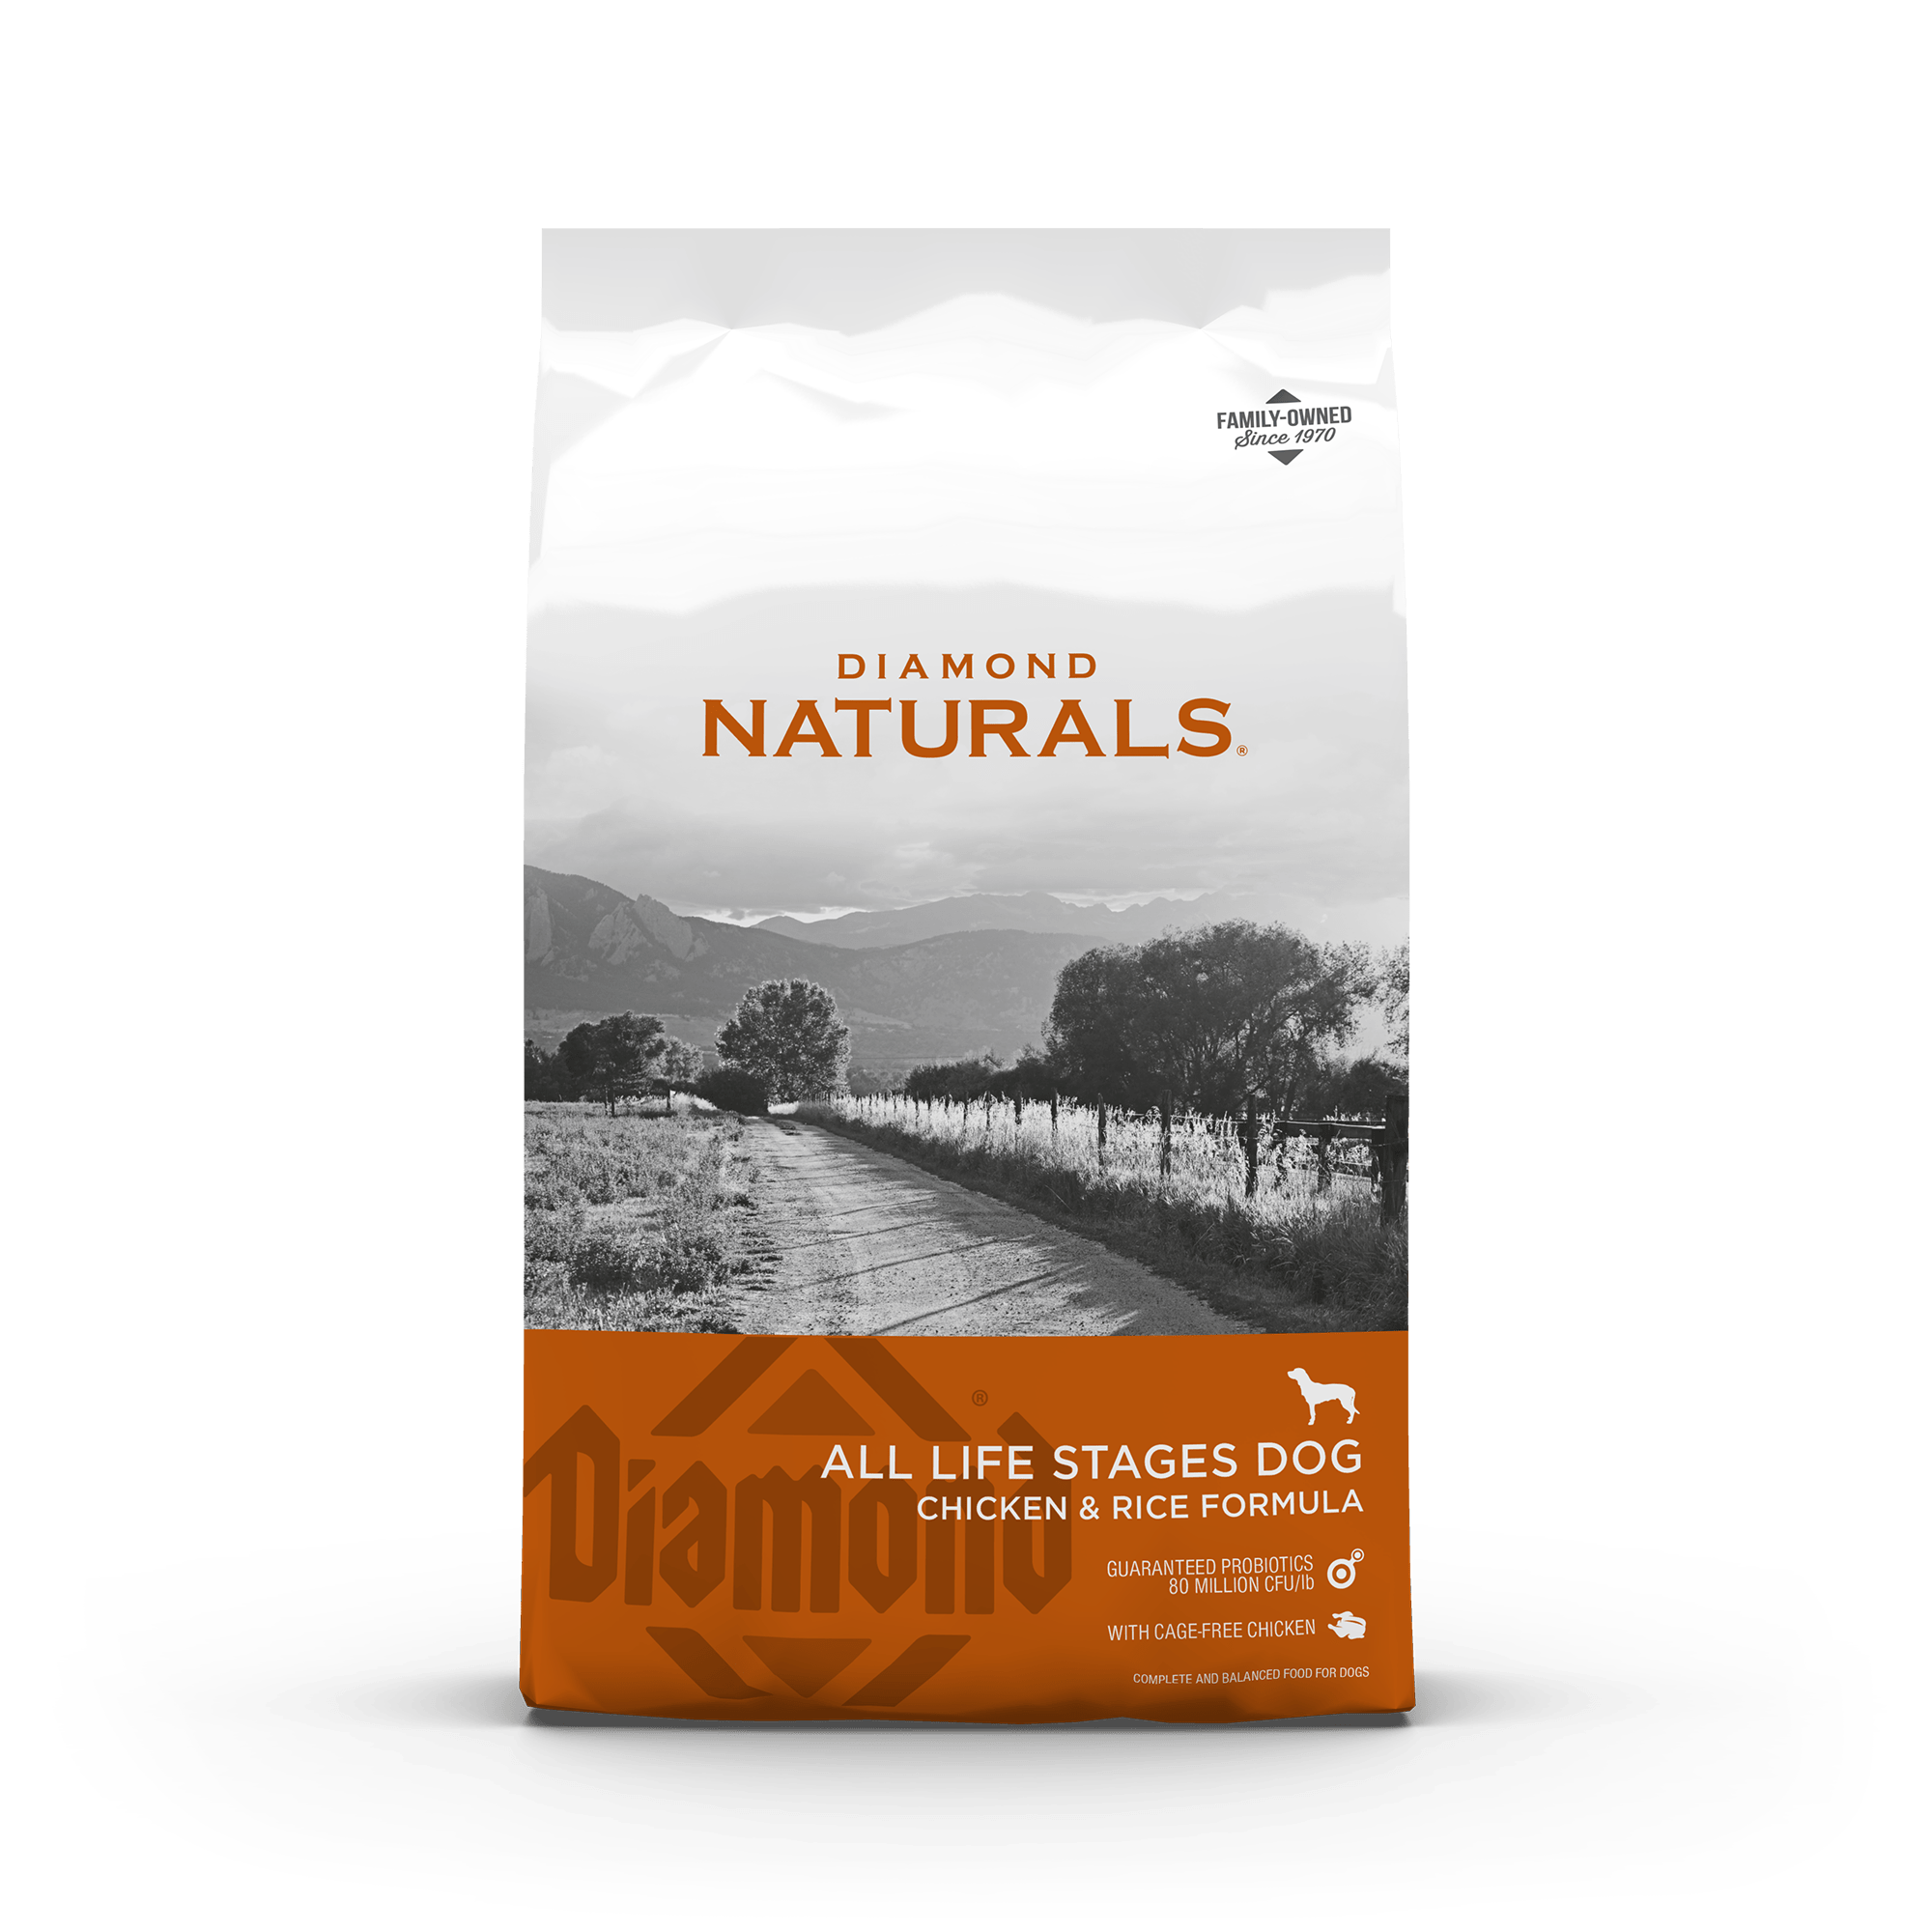 Diamond Naturals All Life Stages Dog Chicken & Rice   Diamond Pet Foods